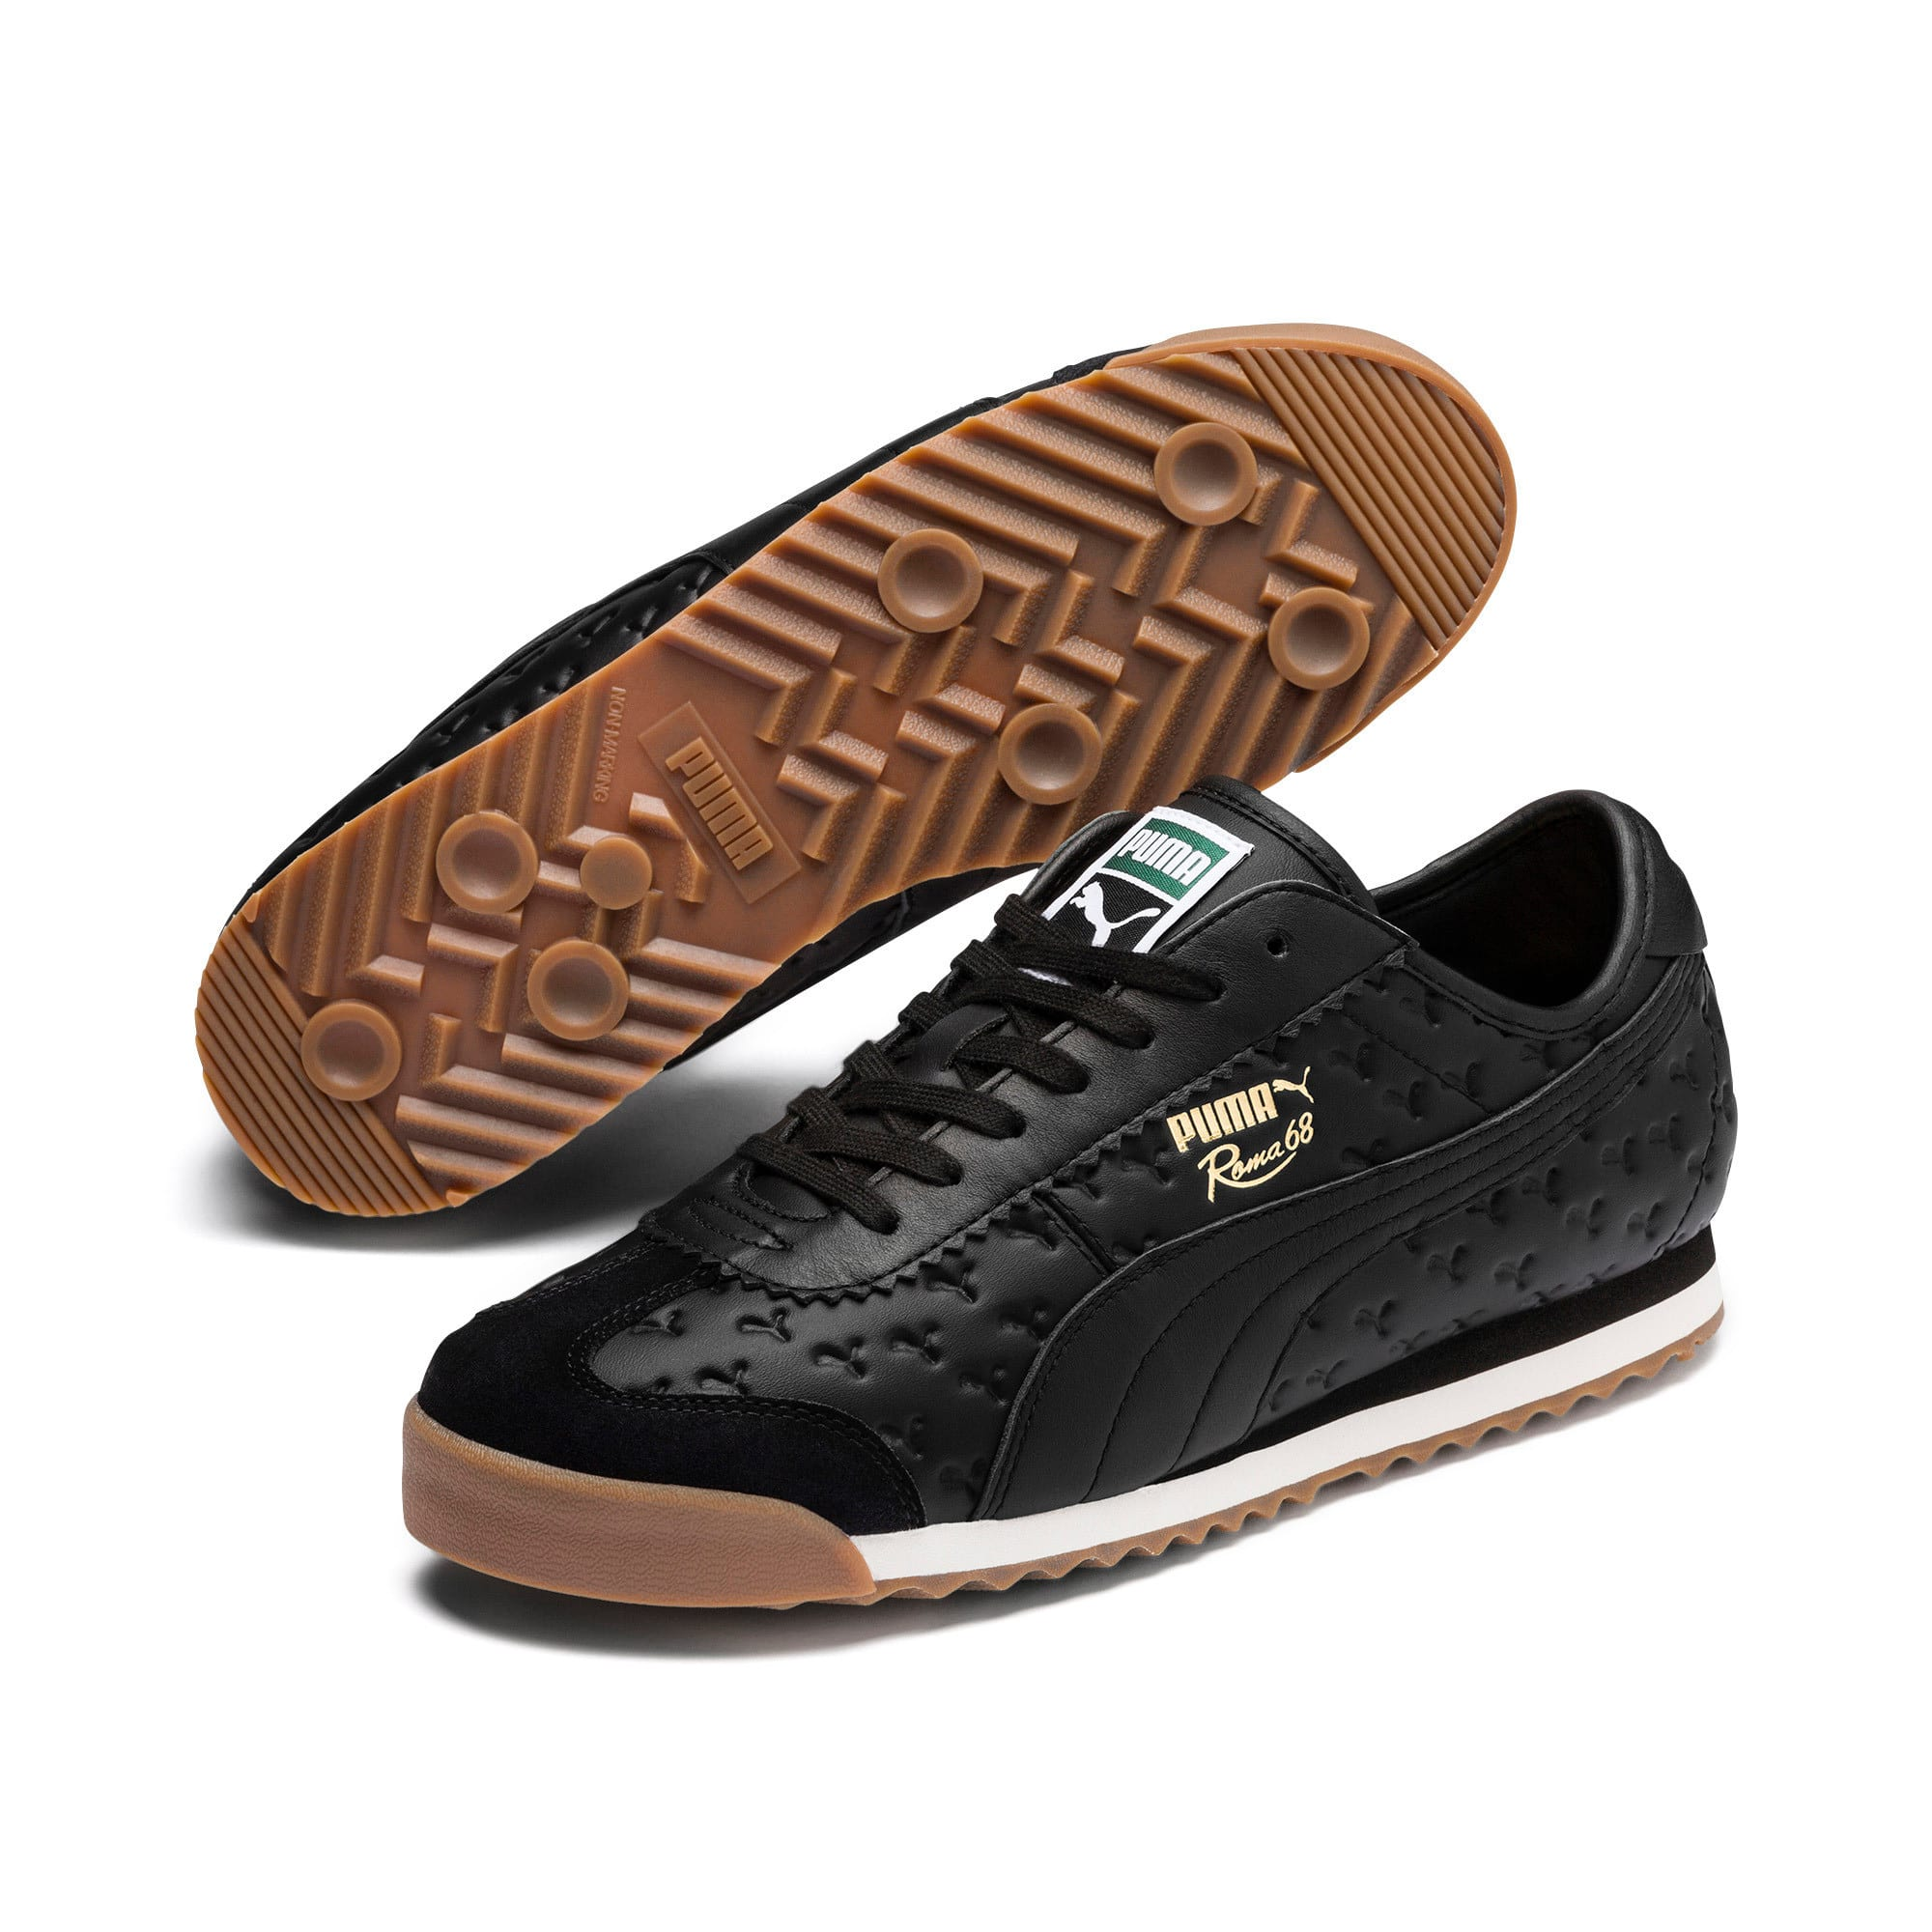 Thumbnail 3 of Roma '68 Gum Sneakers, Puma Black-Puma Black, medium